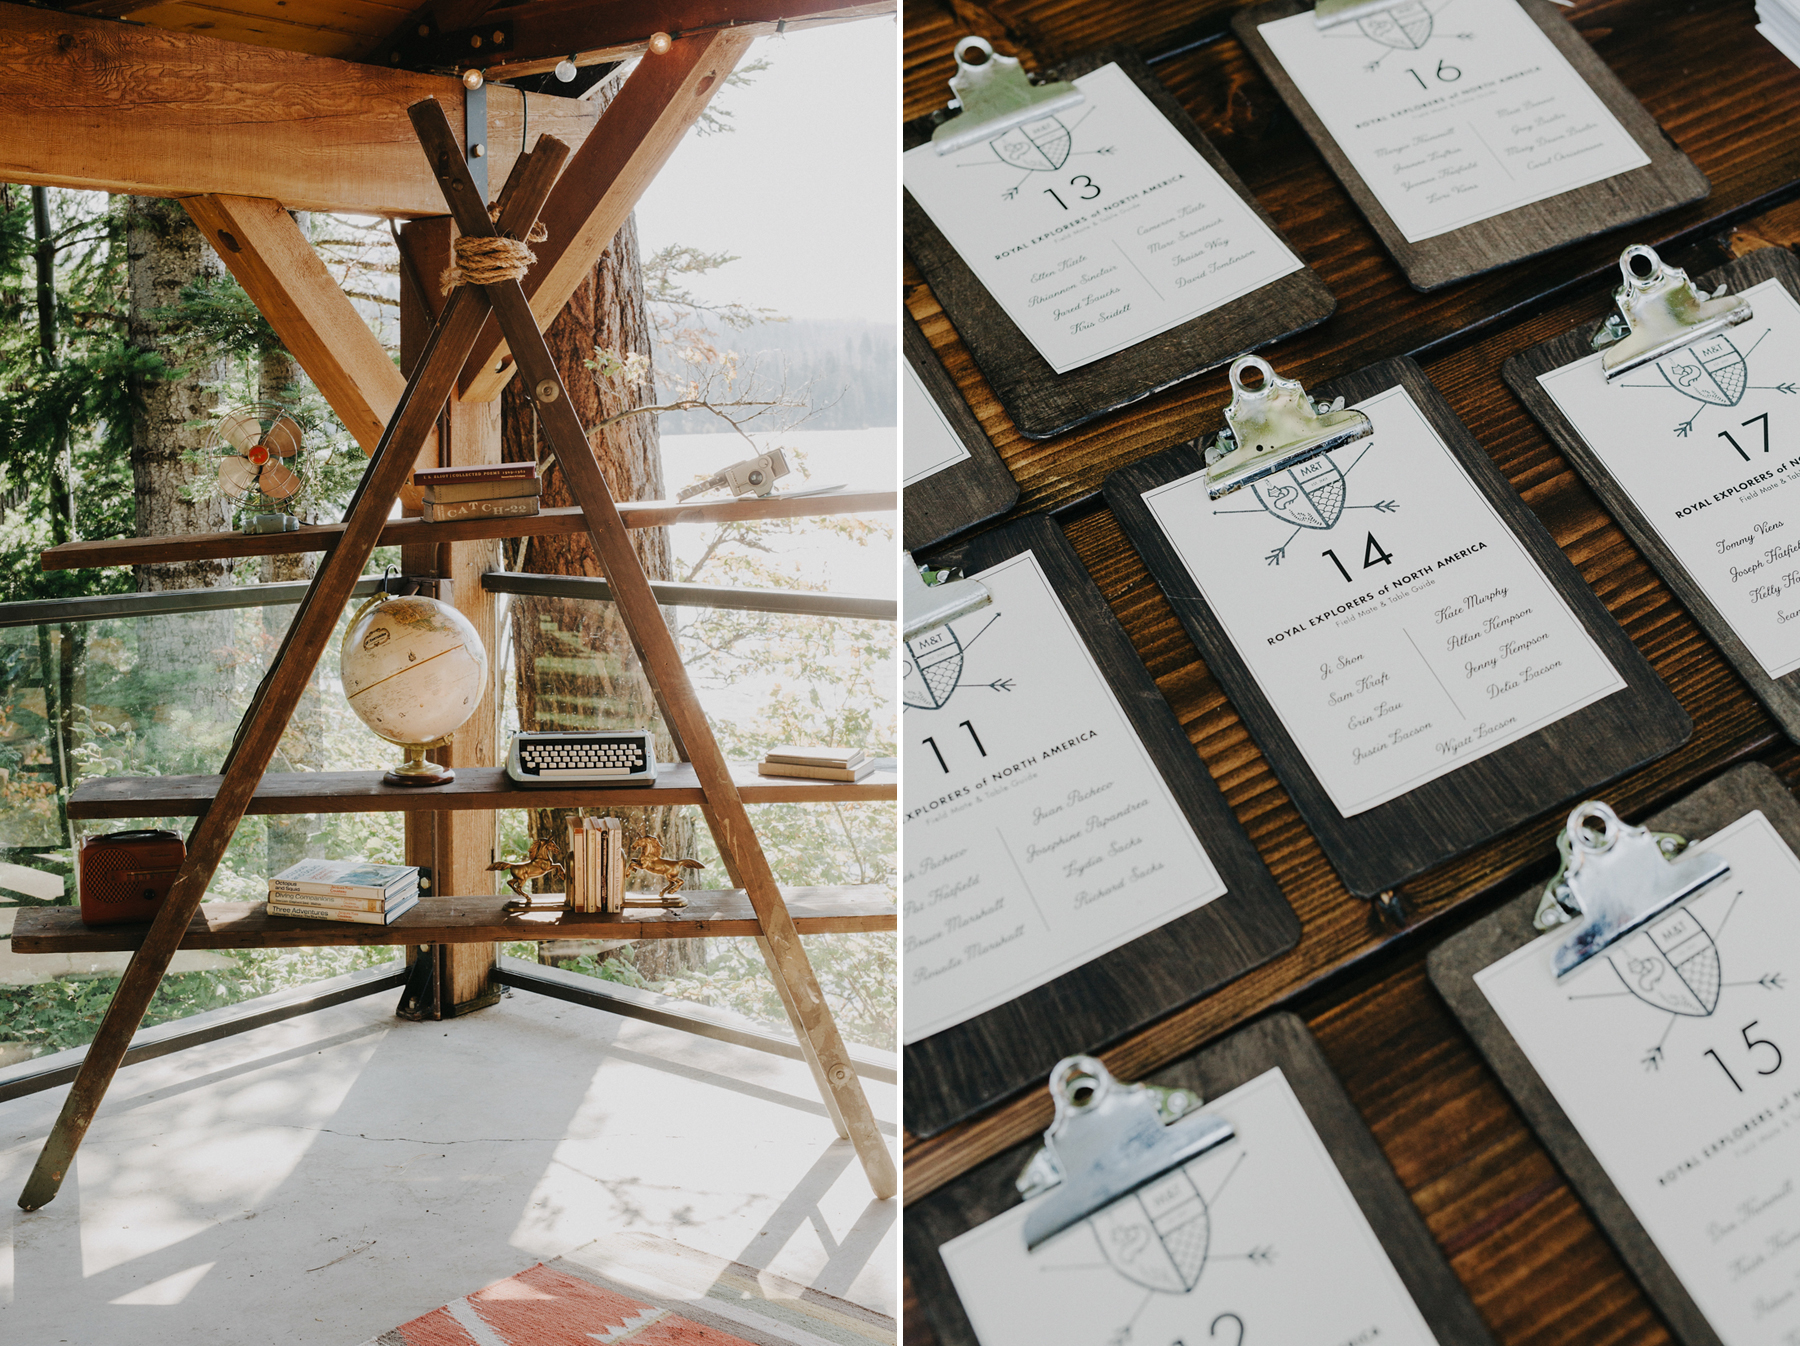 Wes Anderson mid century inspired wedding details at campground wedding